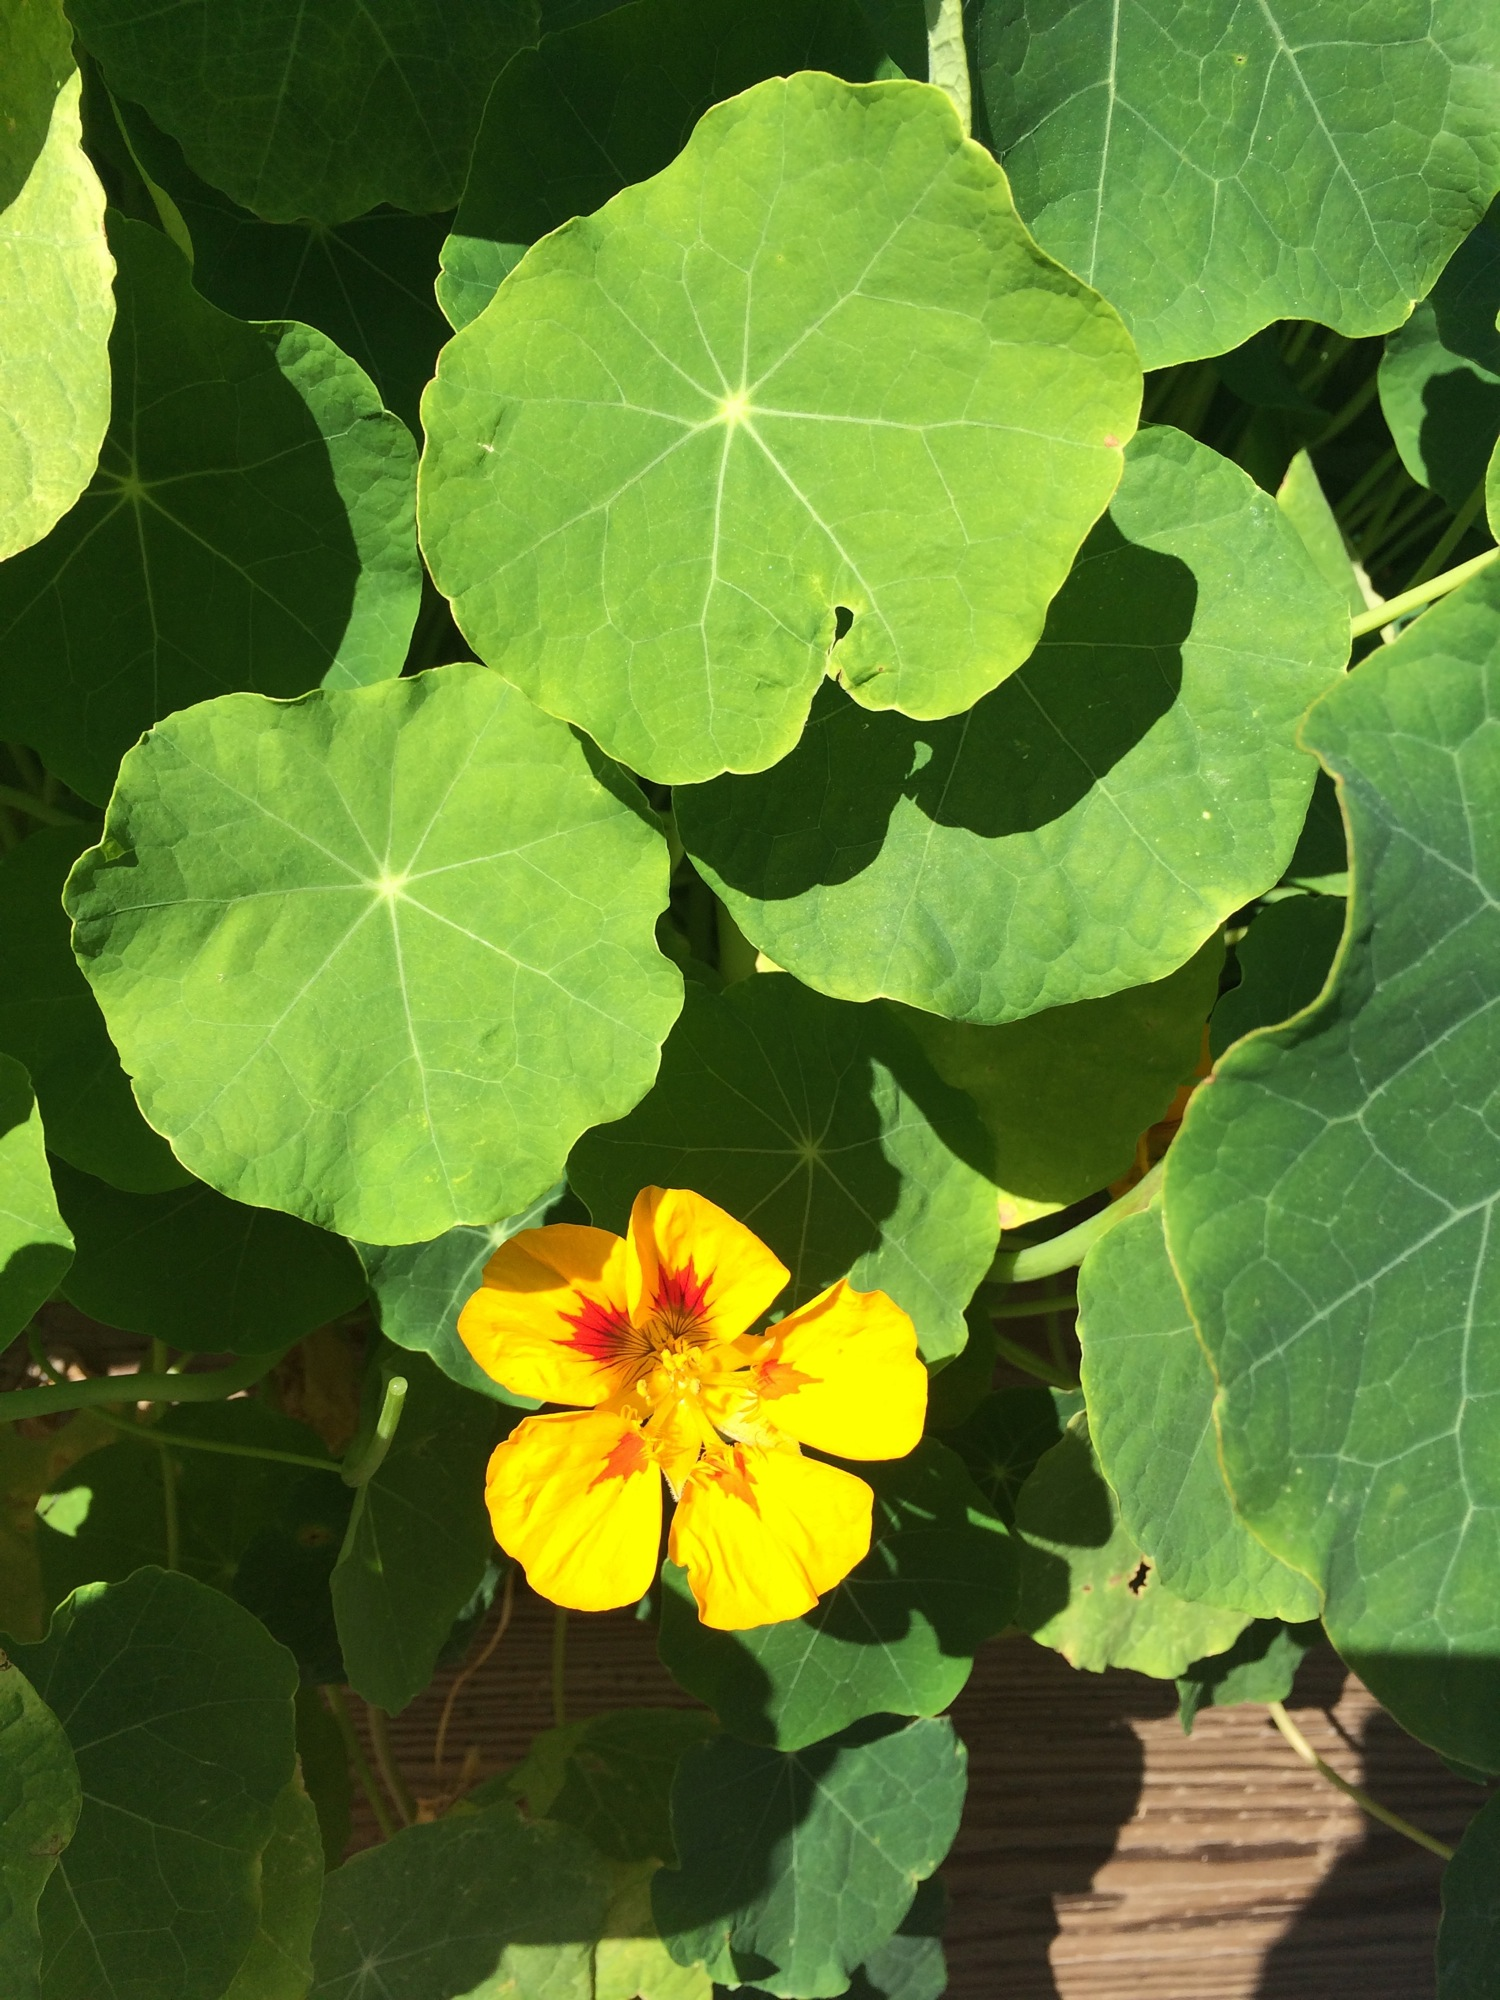 The nasturtium plant in all its glory.